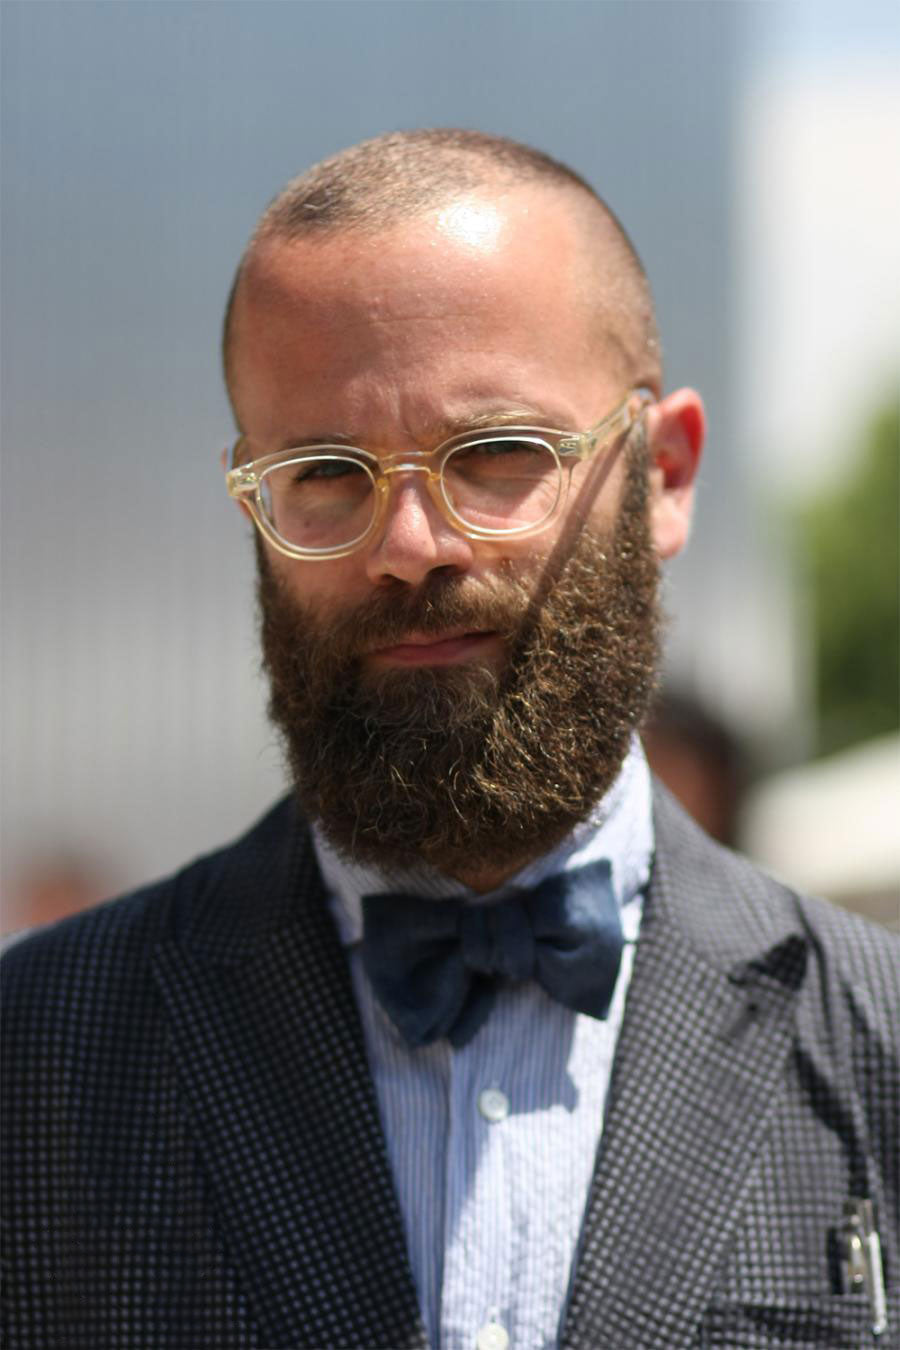 Bearded bald man wearing semi opaque thick glasses frame